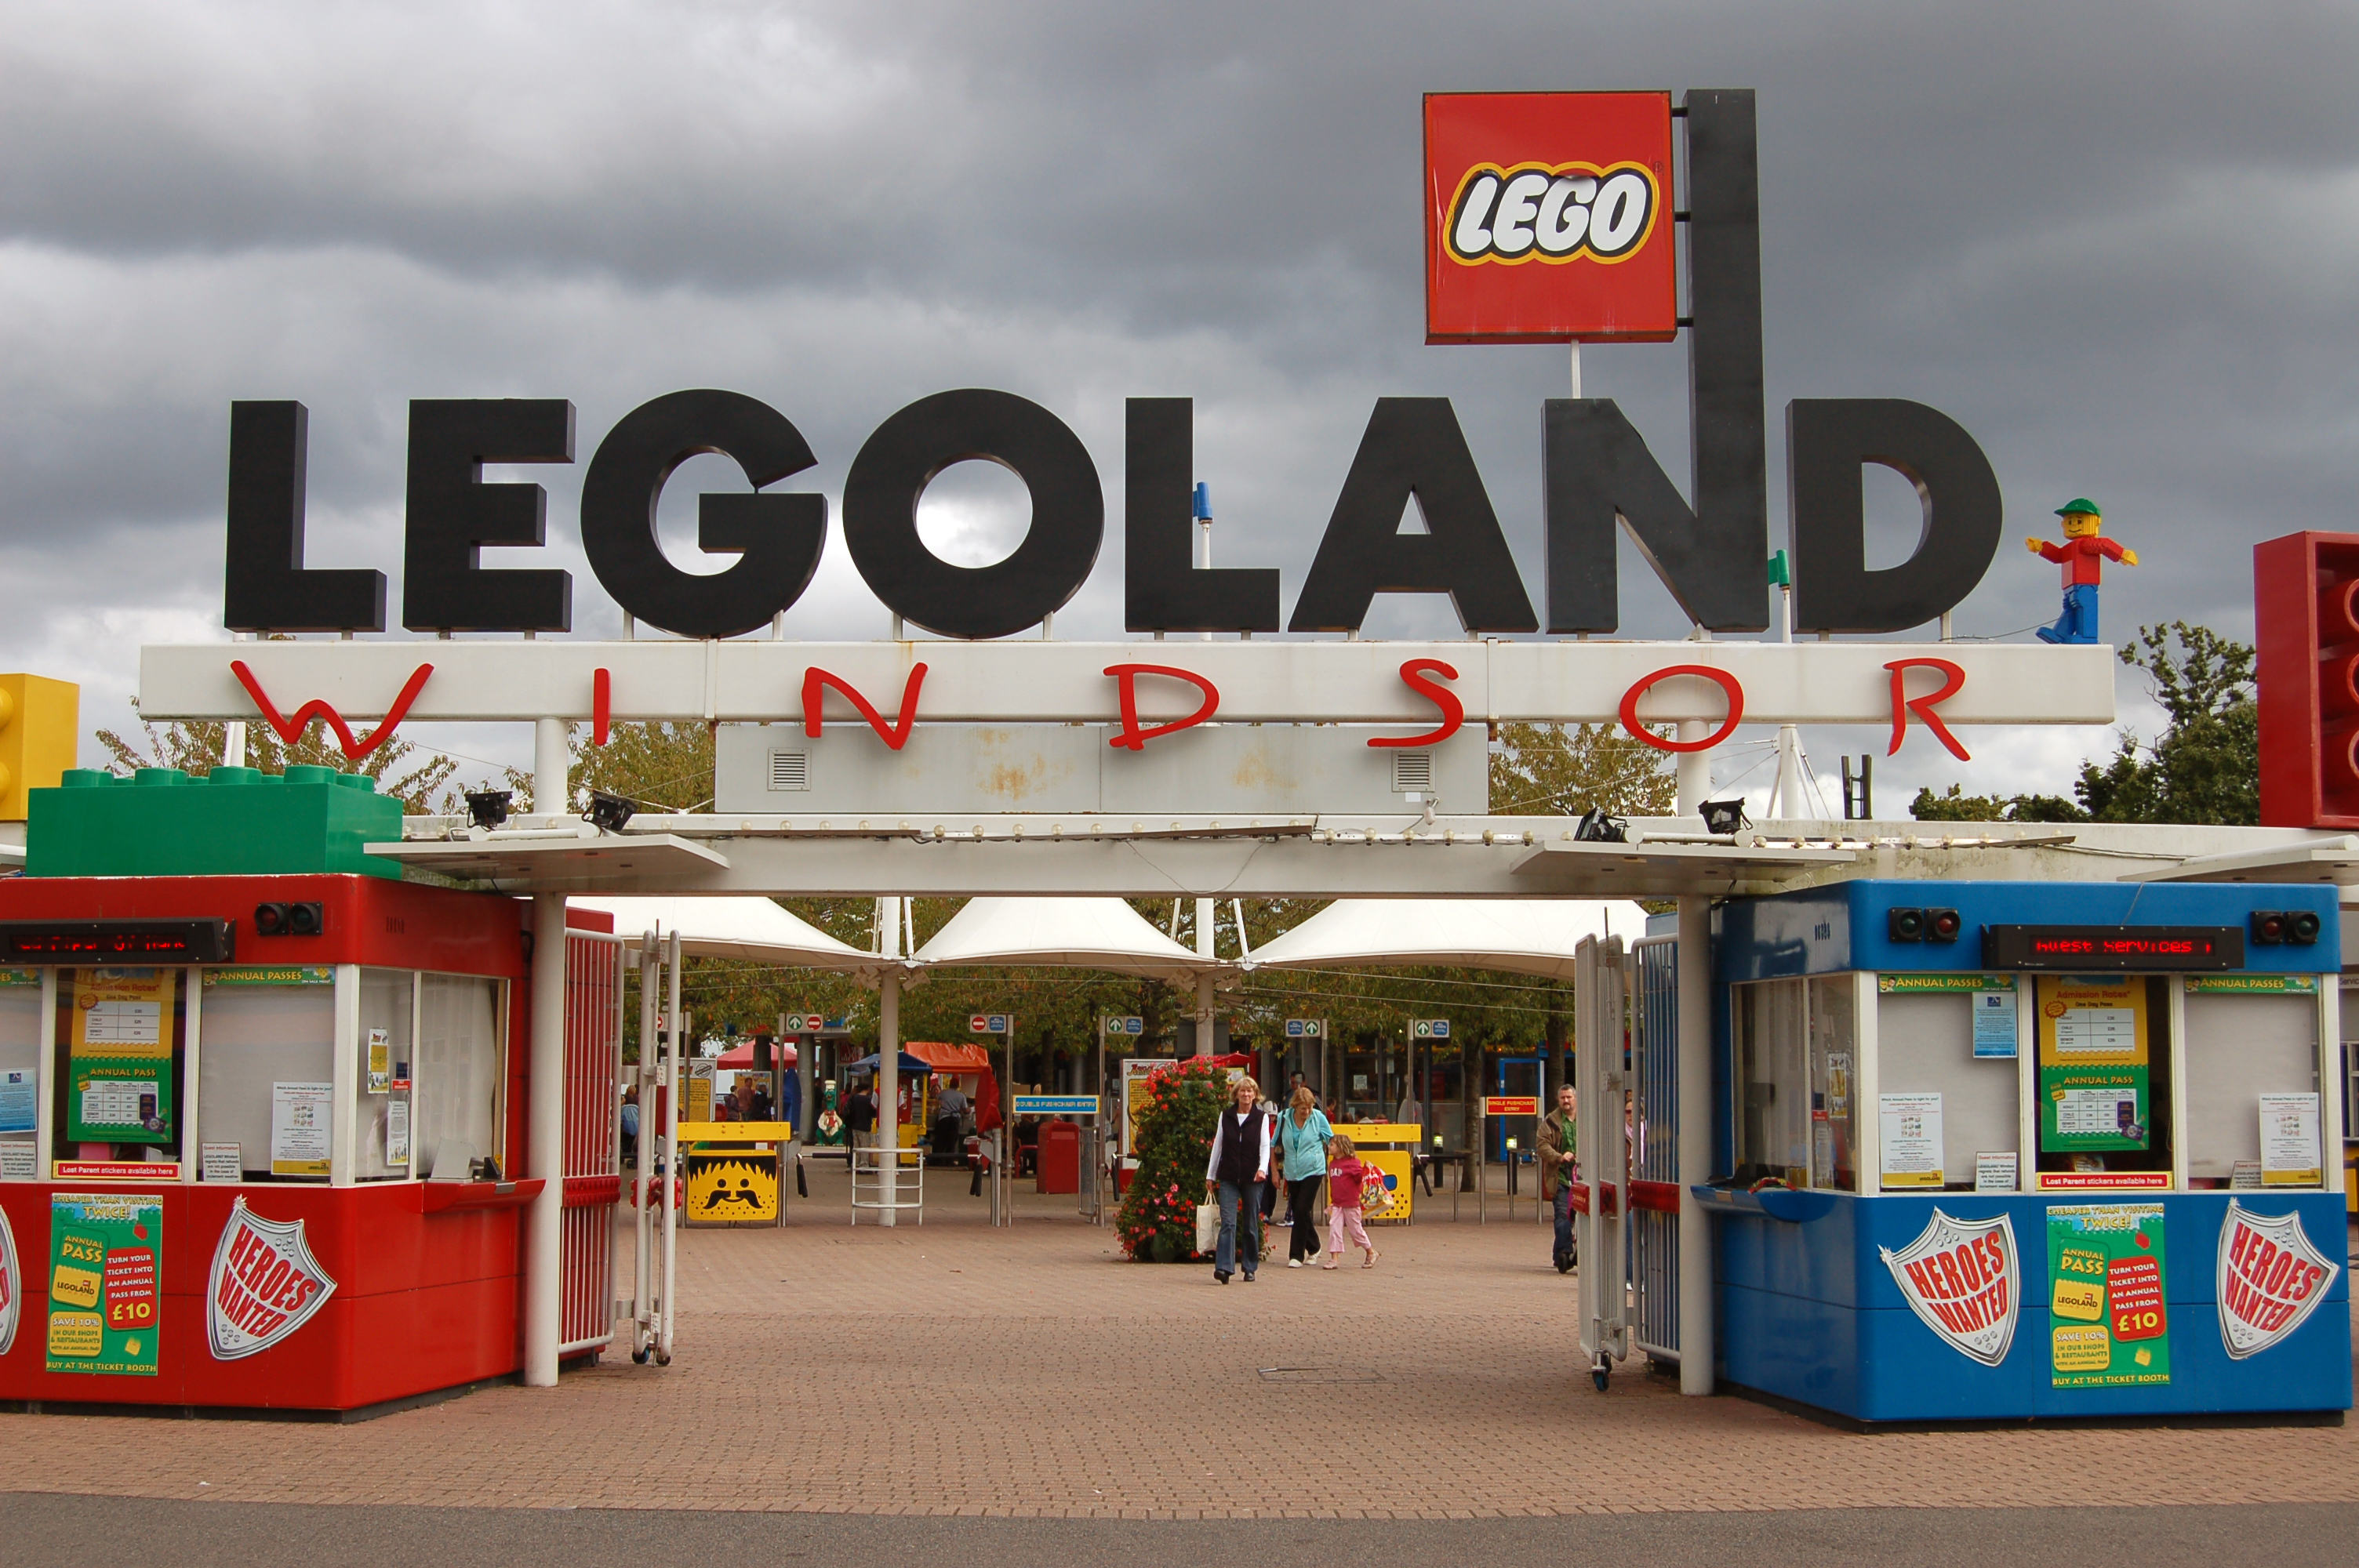 UNILAD 241 A Newborn Baby Has Been Given A Lifetime Pass To Legoland, After Being Born There